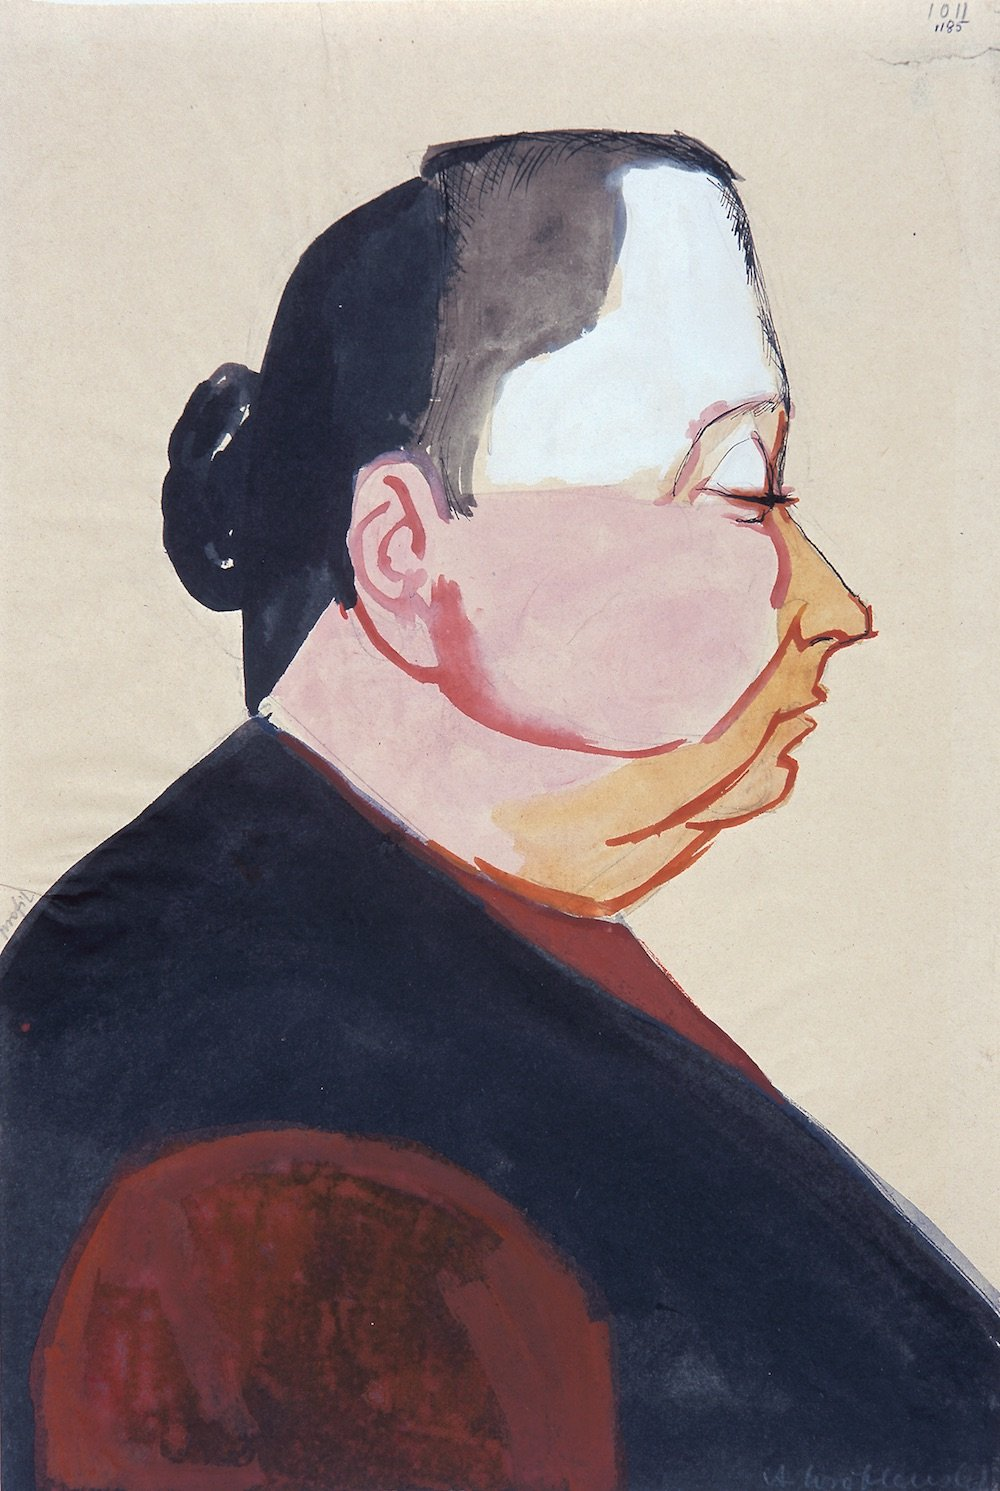 (Profile), [Profile no.1011], Undated  Watercolour and gouache on paper, 27.3 x 25 cm. Private Collection © Andrzej Wróblewski Foundation